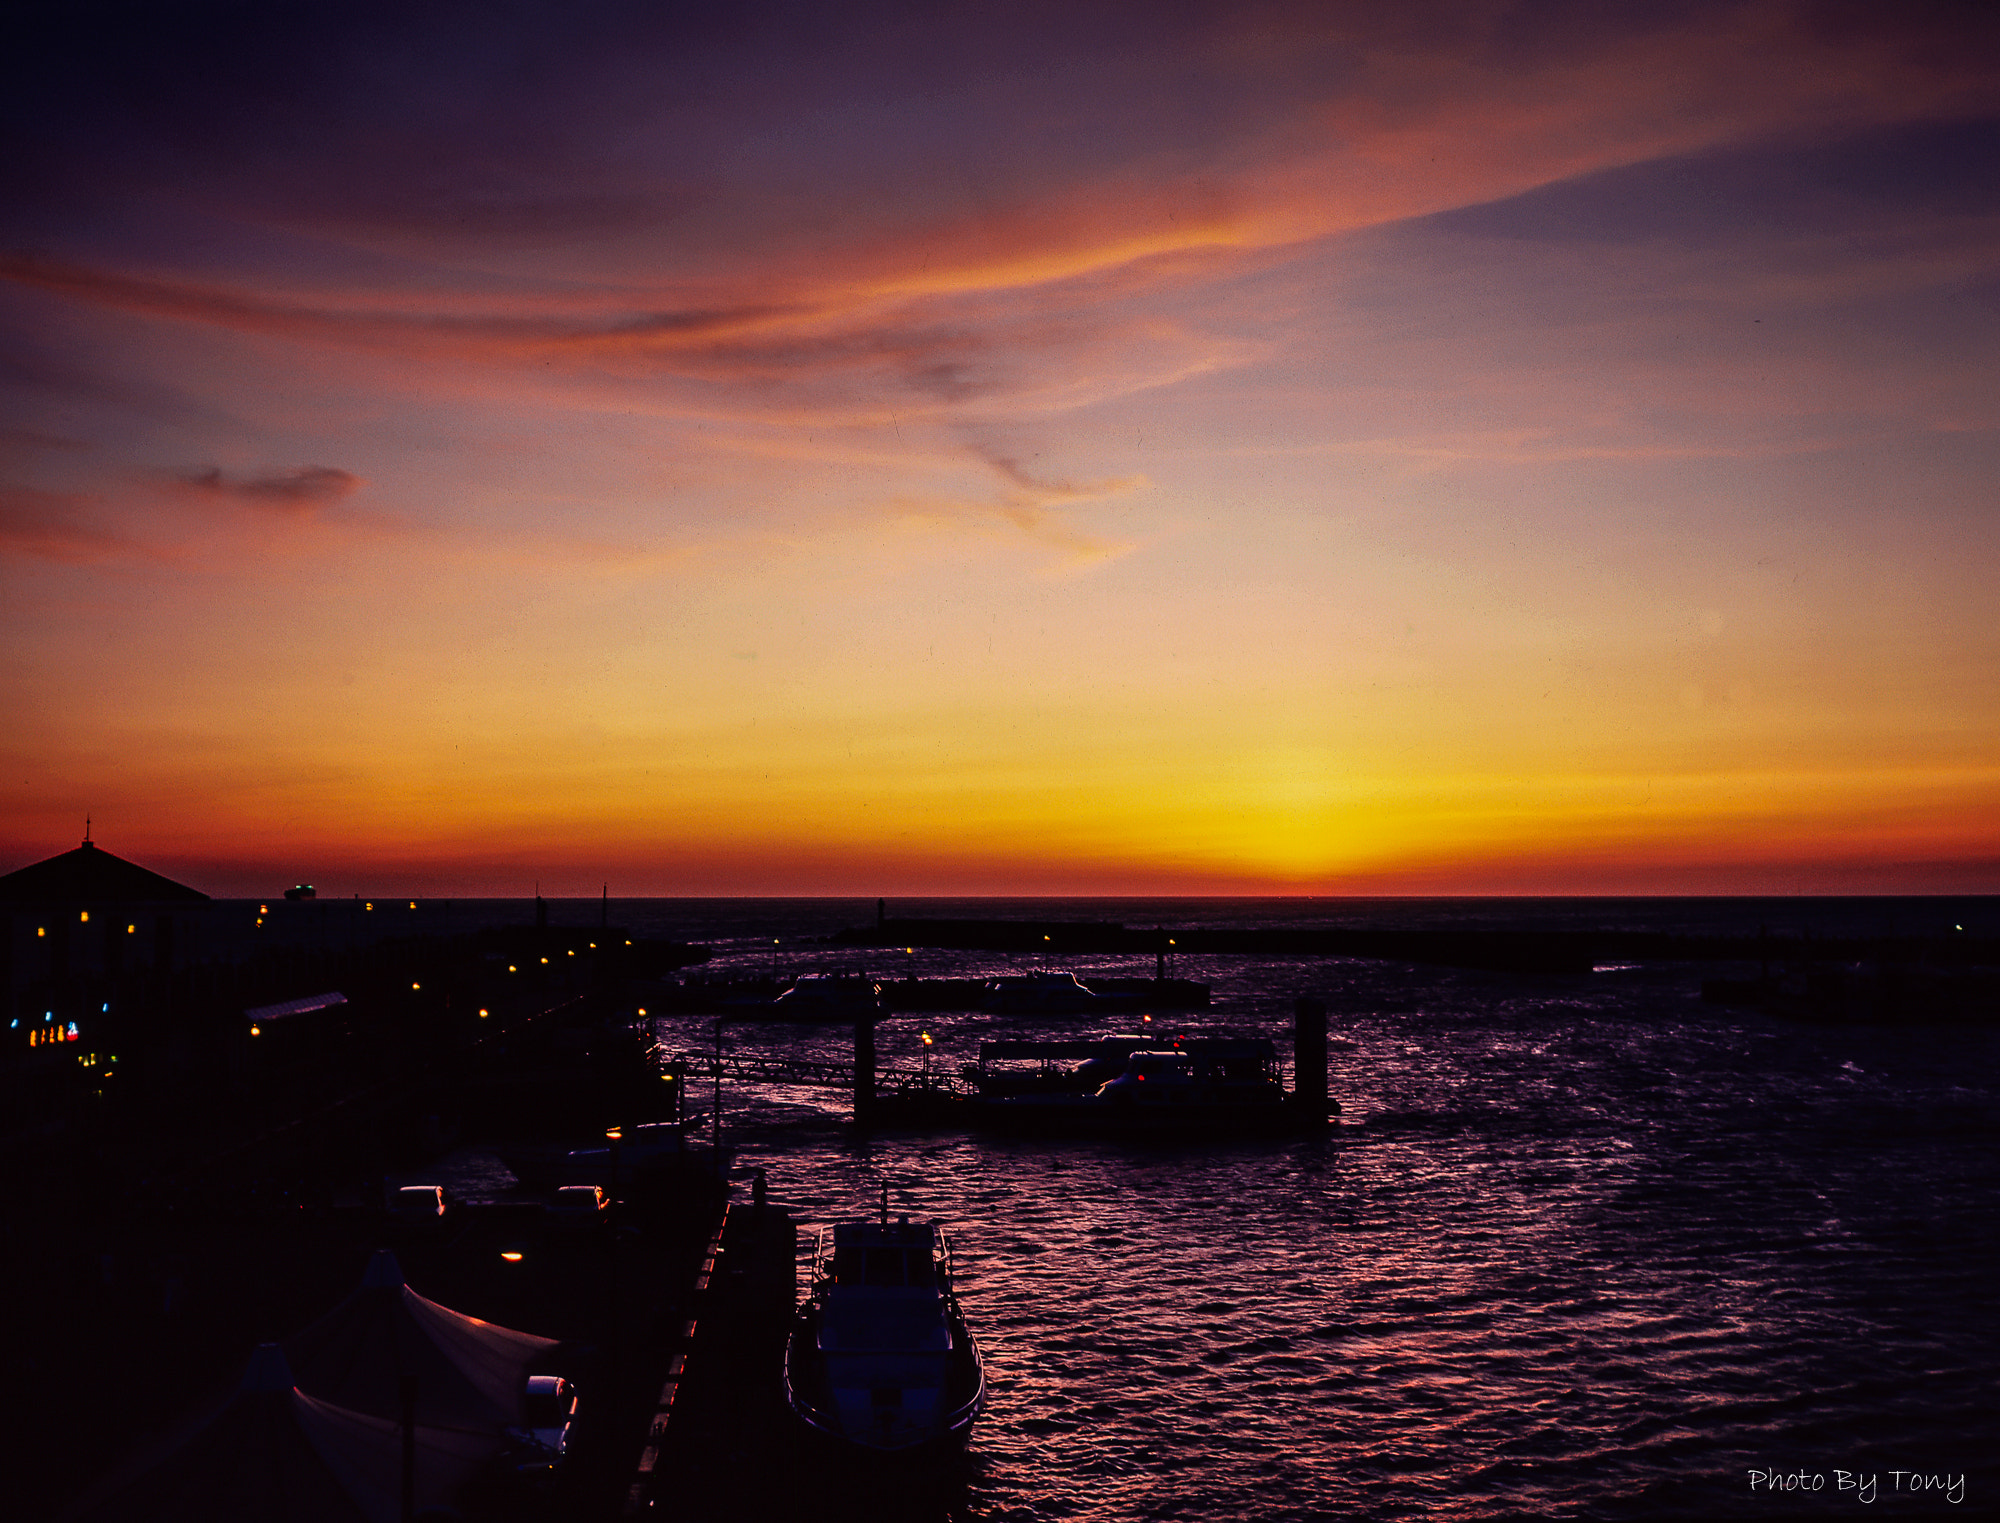 Photograph sunset in Tamsui by Tony Tu on 500px